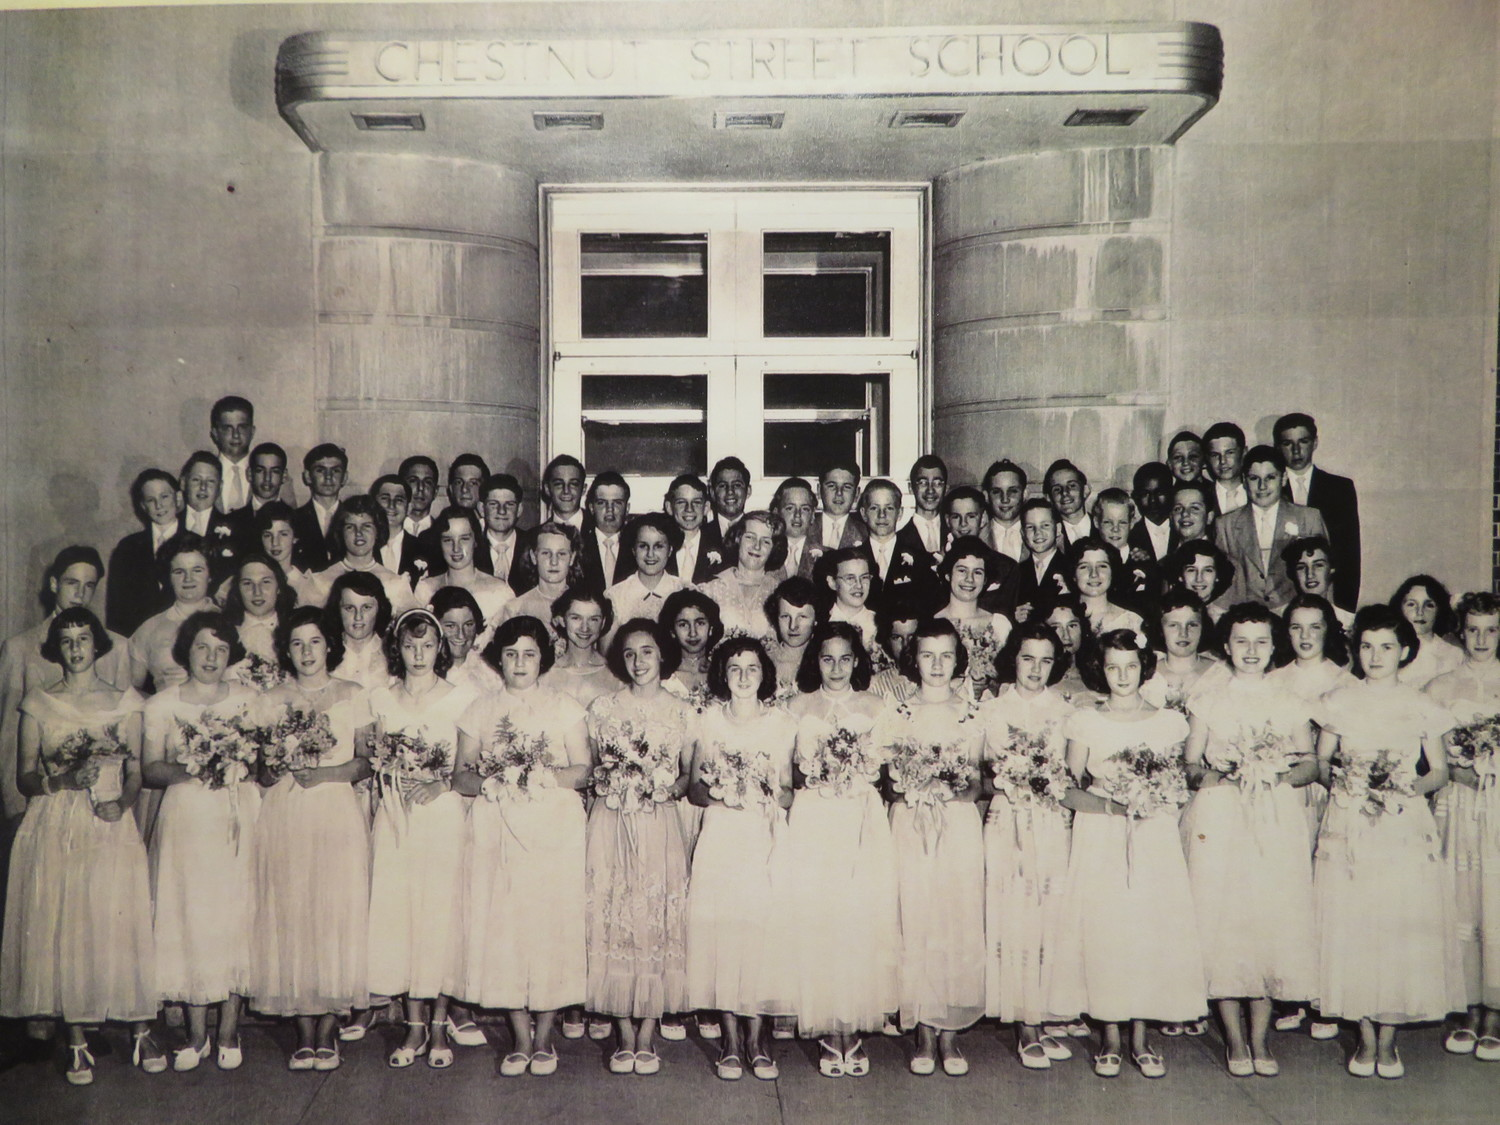 Eighth-graders at Chestnut Street's graduation in 1951.